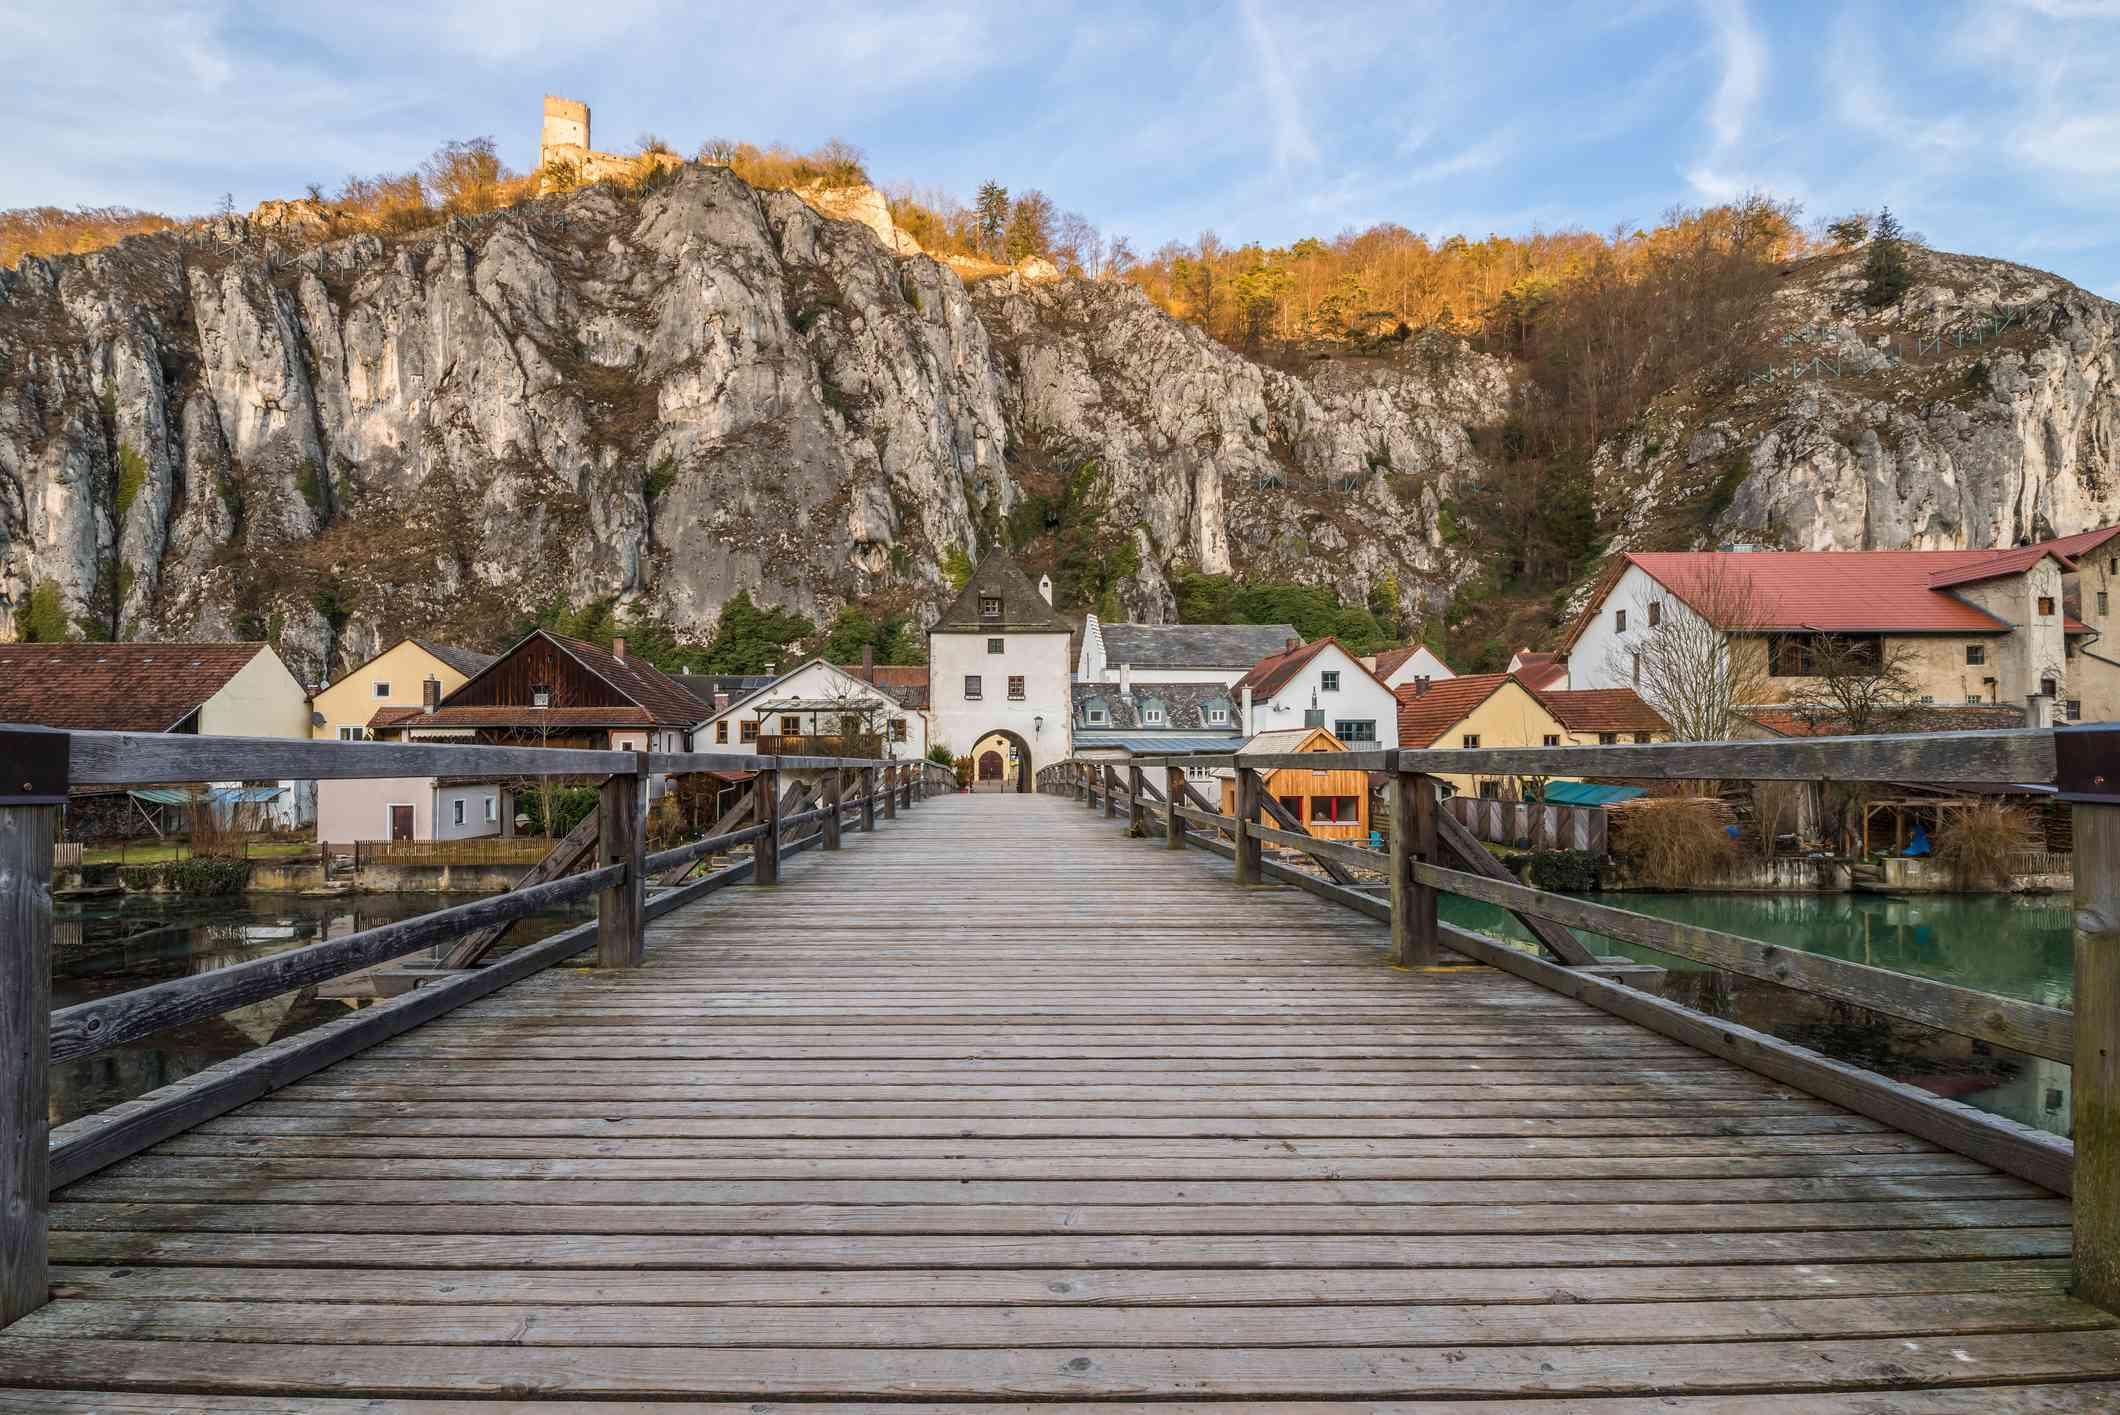 Altmühl valley with the bridge over the river and the castle on the rock, Germany